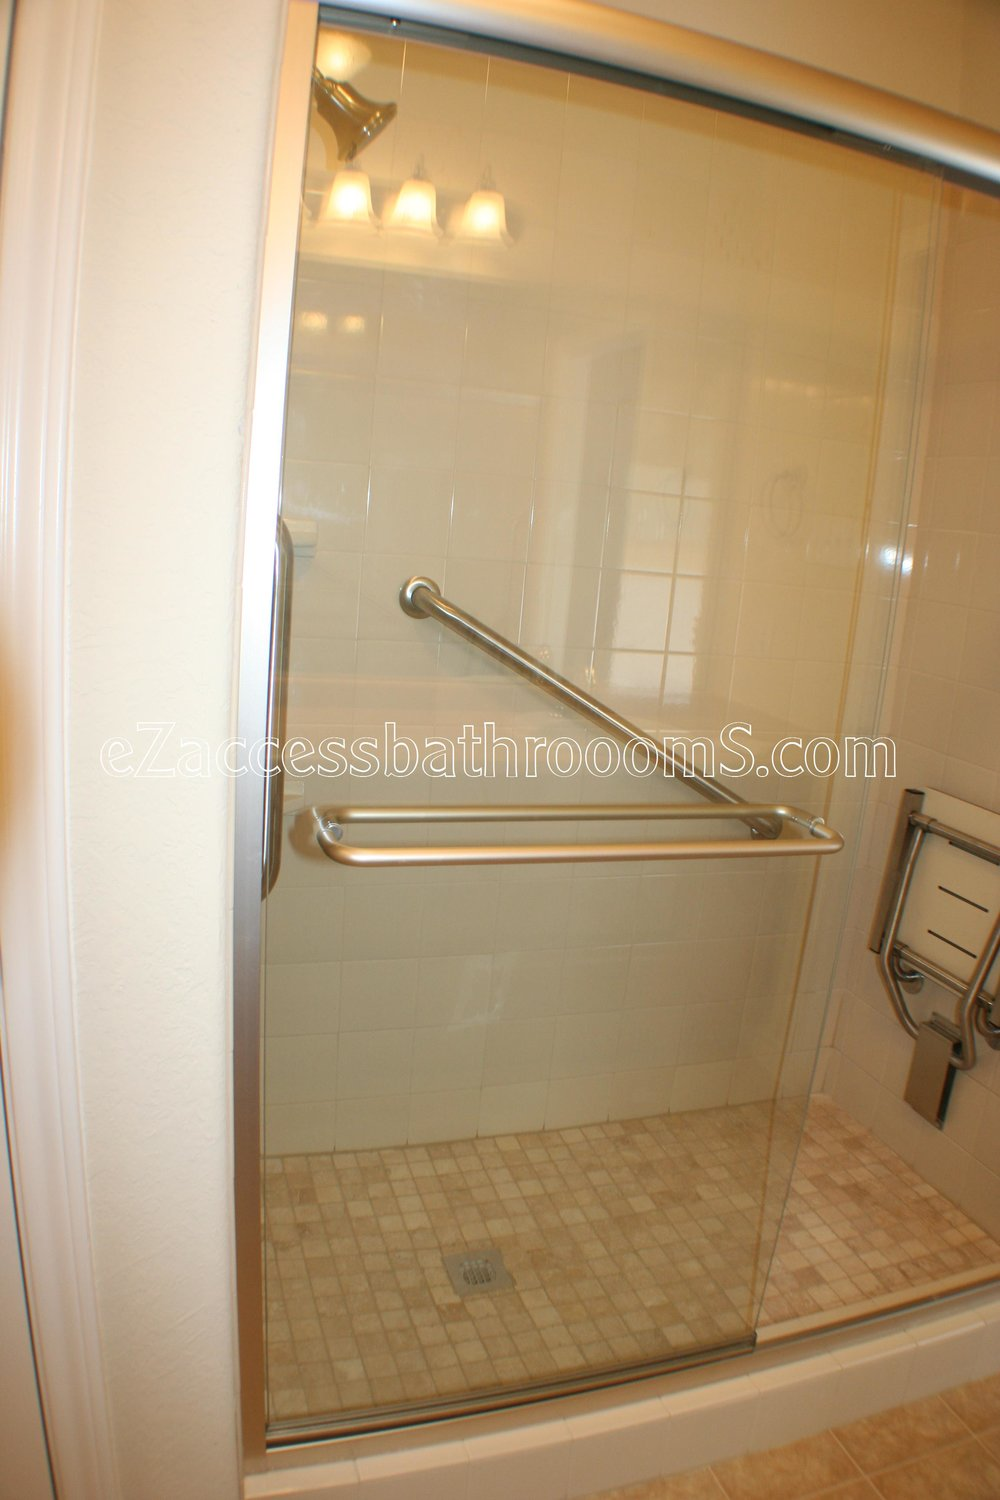 TUBTOSHOWERS CONVERSIONS EZACCESSBATHROOMS.COM 832202843 BRYANT 124.JPG